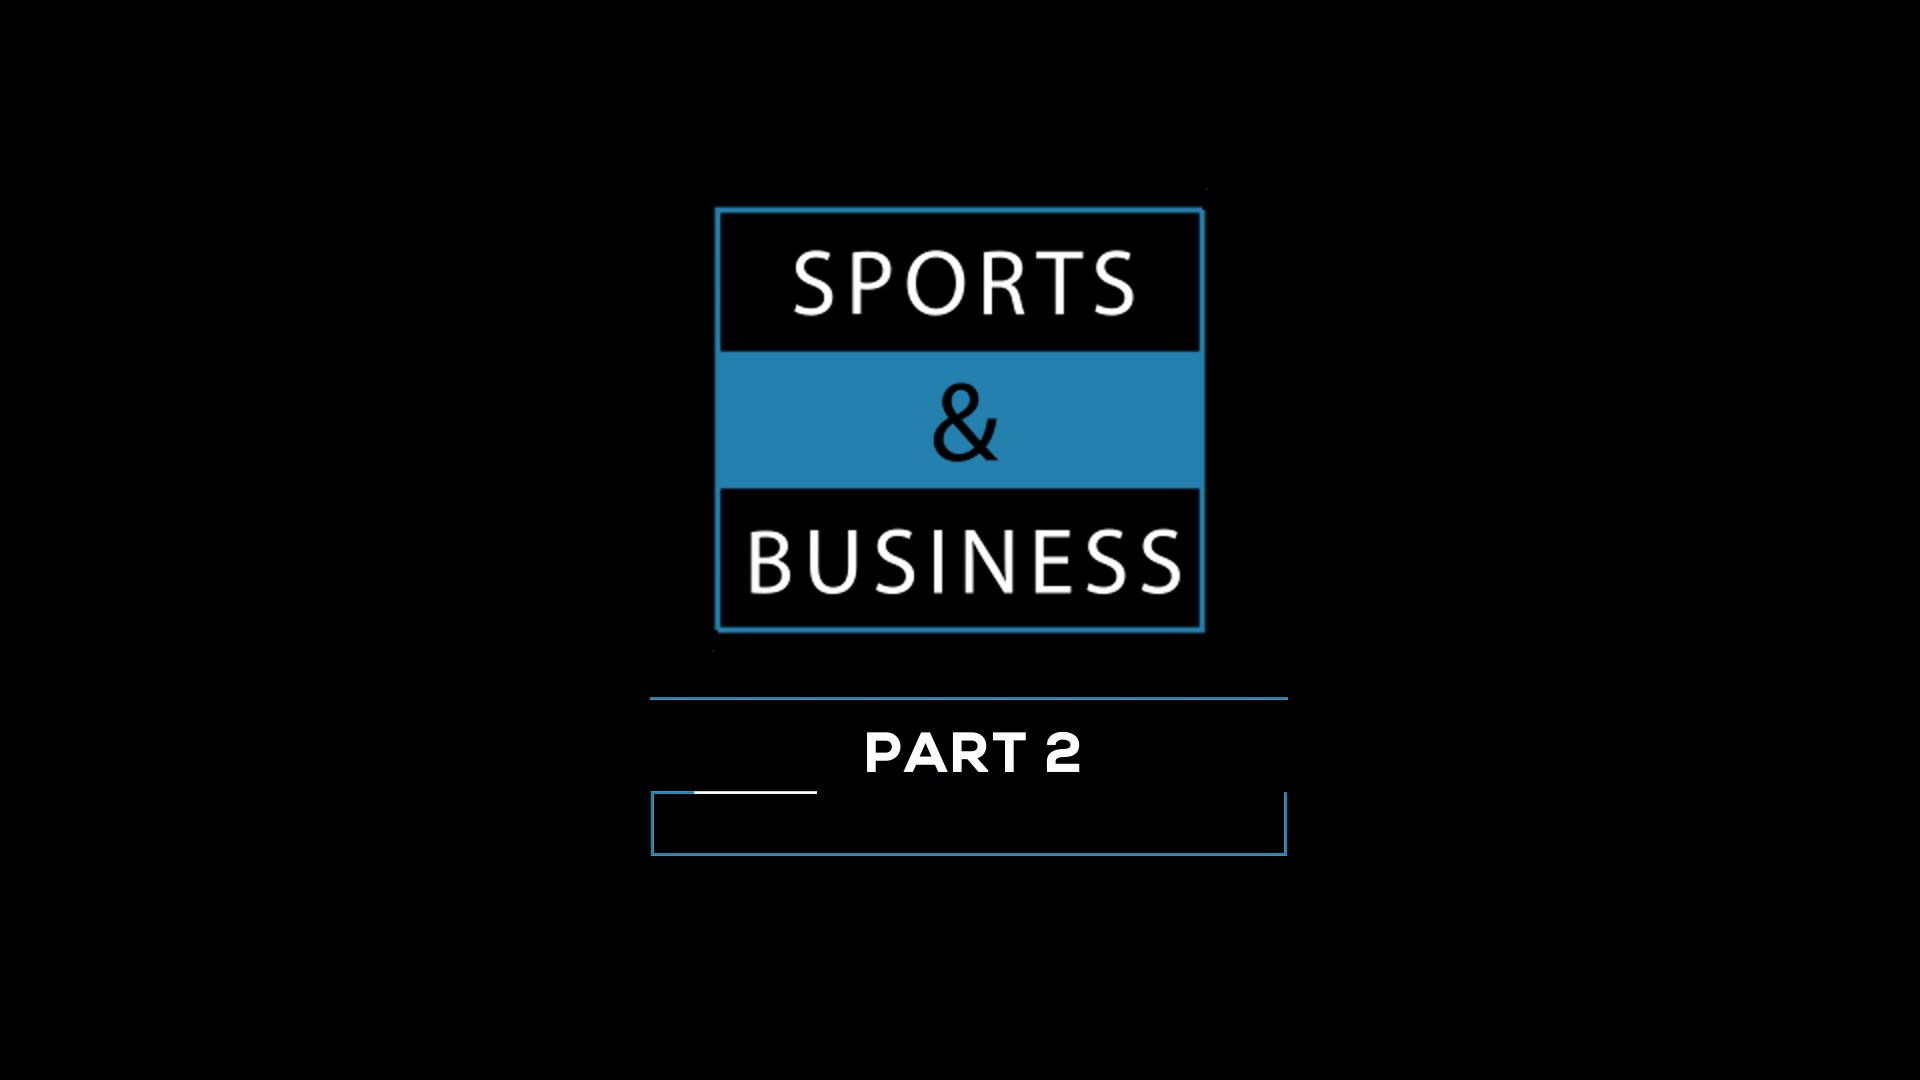 Episode 4: Sports and Business Differences (Part 2)